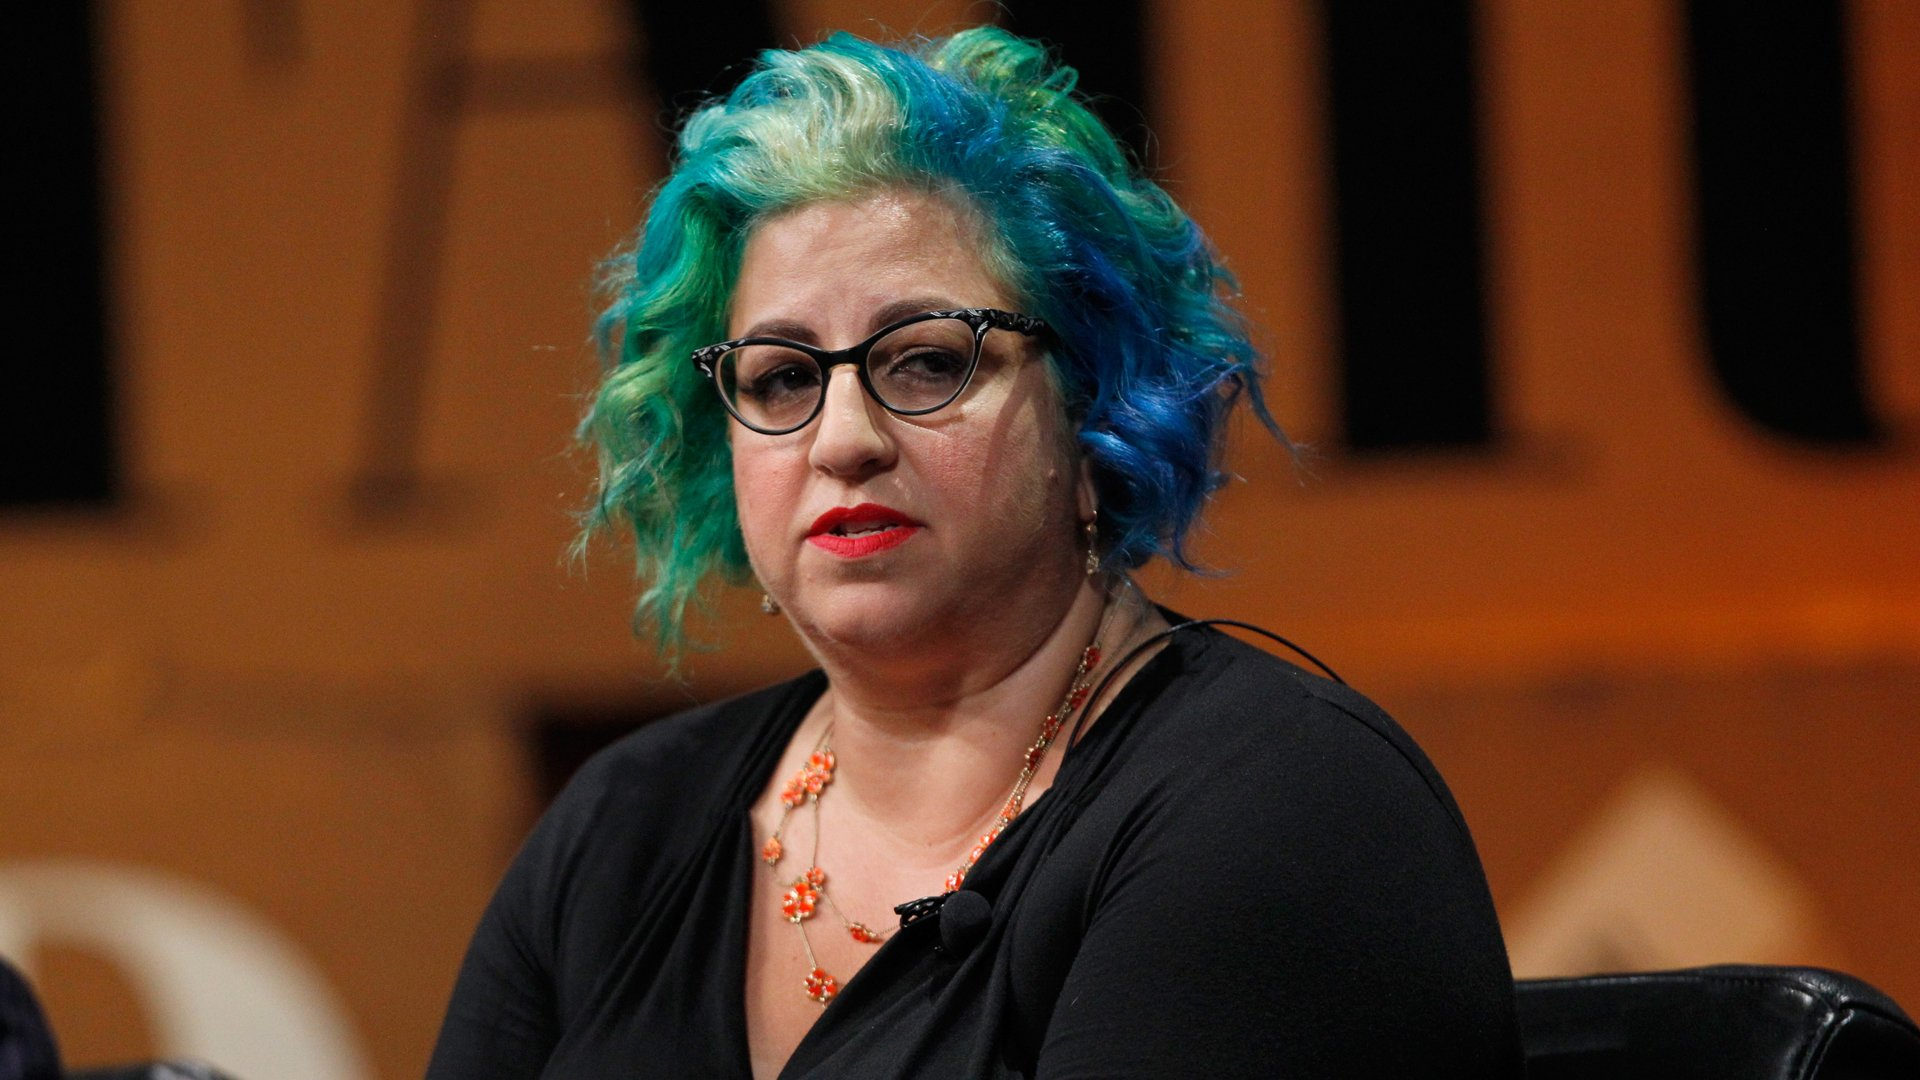 Filmmaker Jenji Kohan is seen on Oct. 9, 2014, in San Francisco. (Credit: Kimberly White/Getty Images for Vanity Fair)